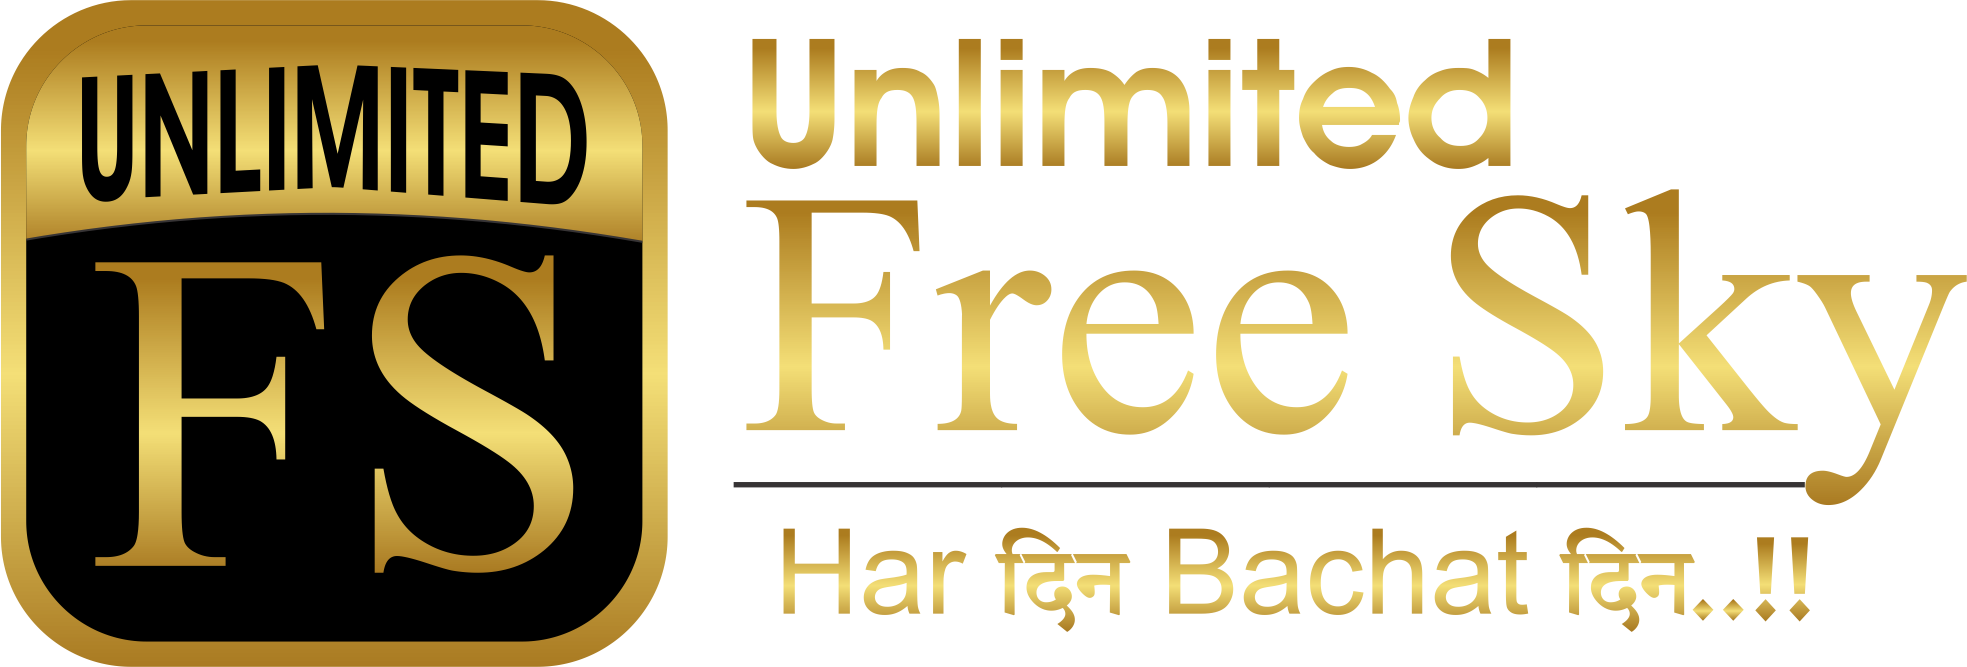 Unlimited Freesky